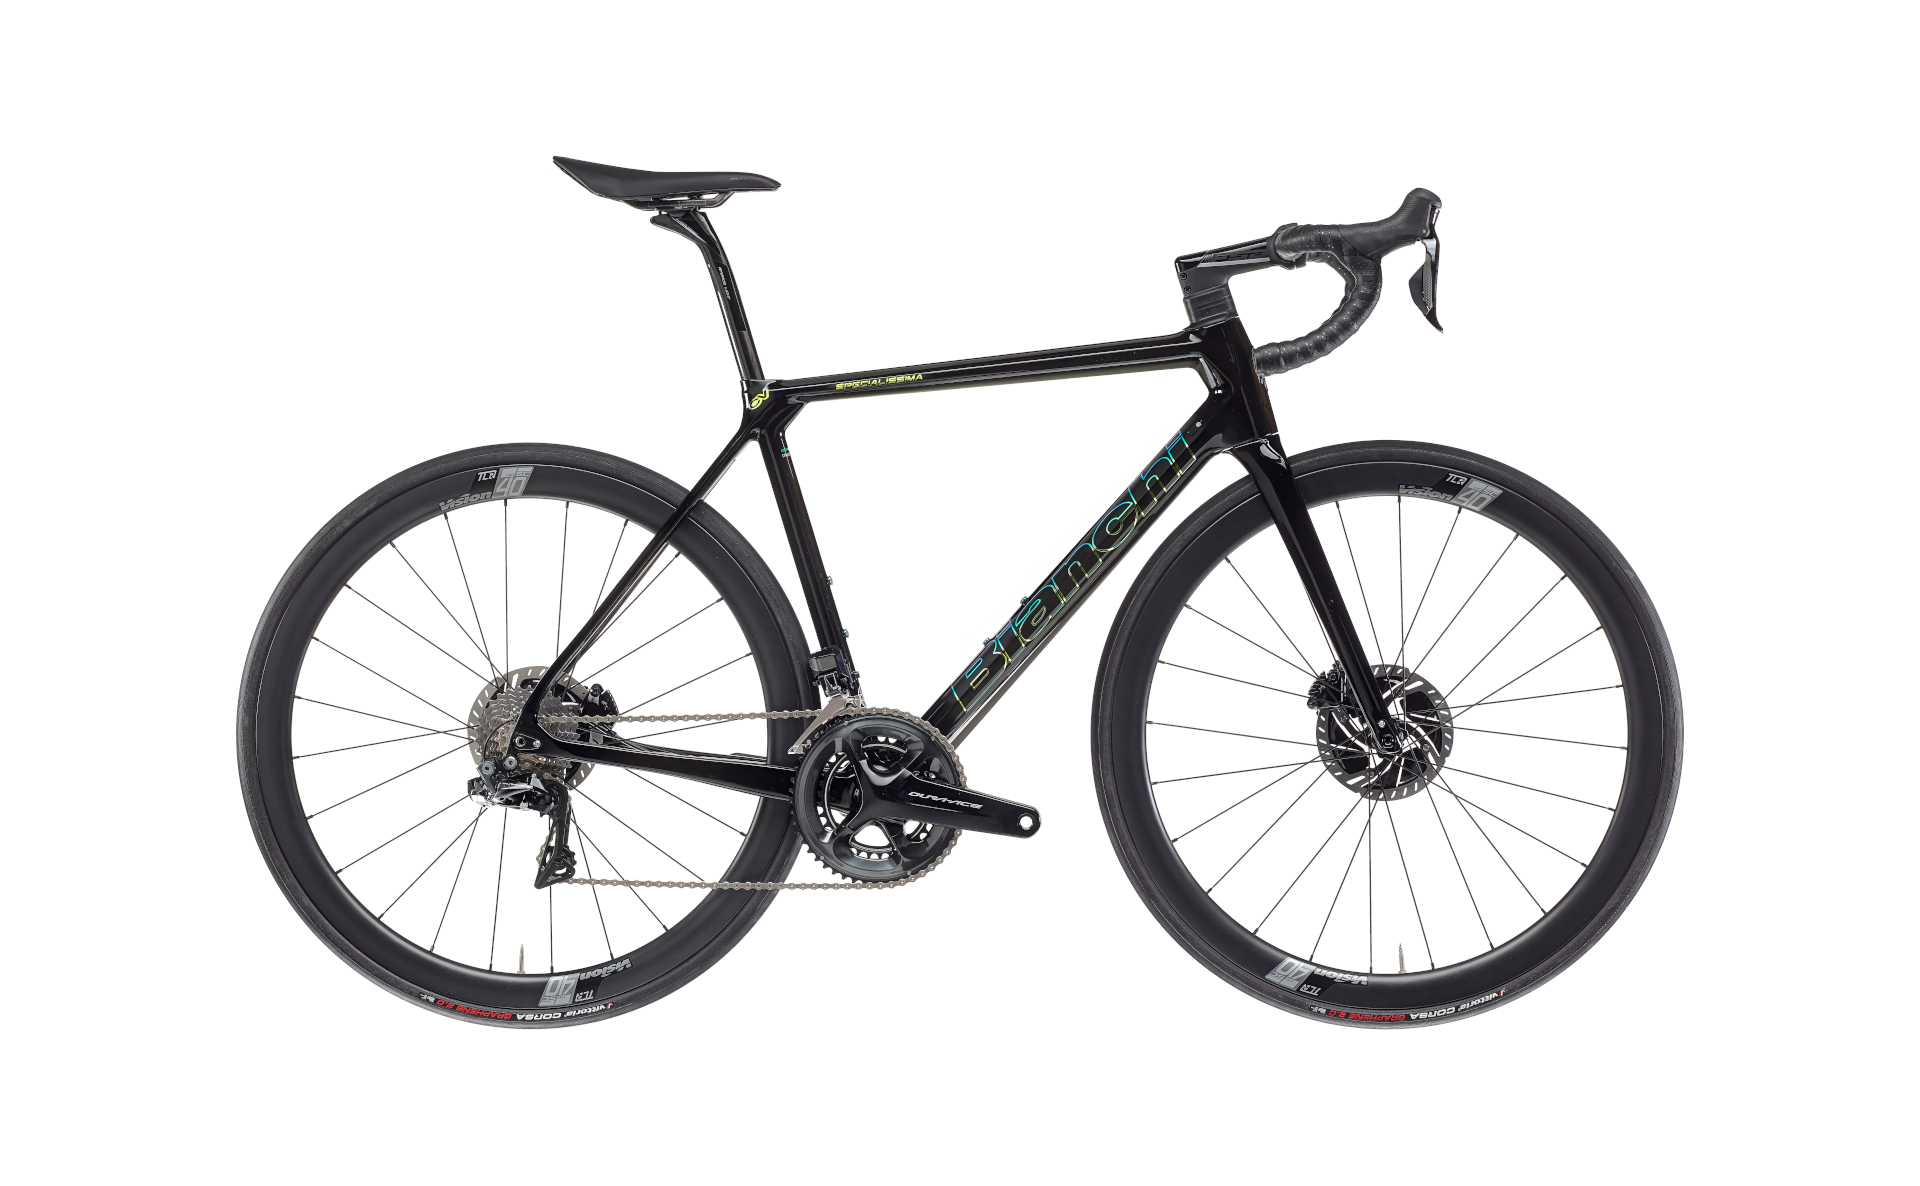 Dura Ace Di2 11sp